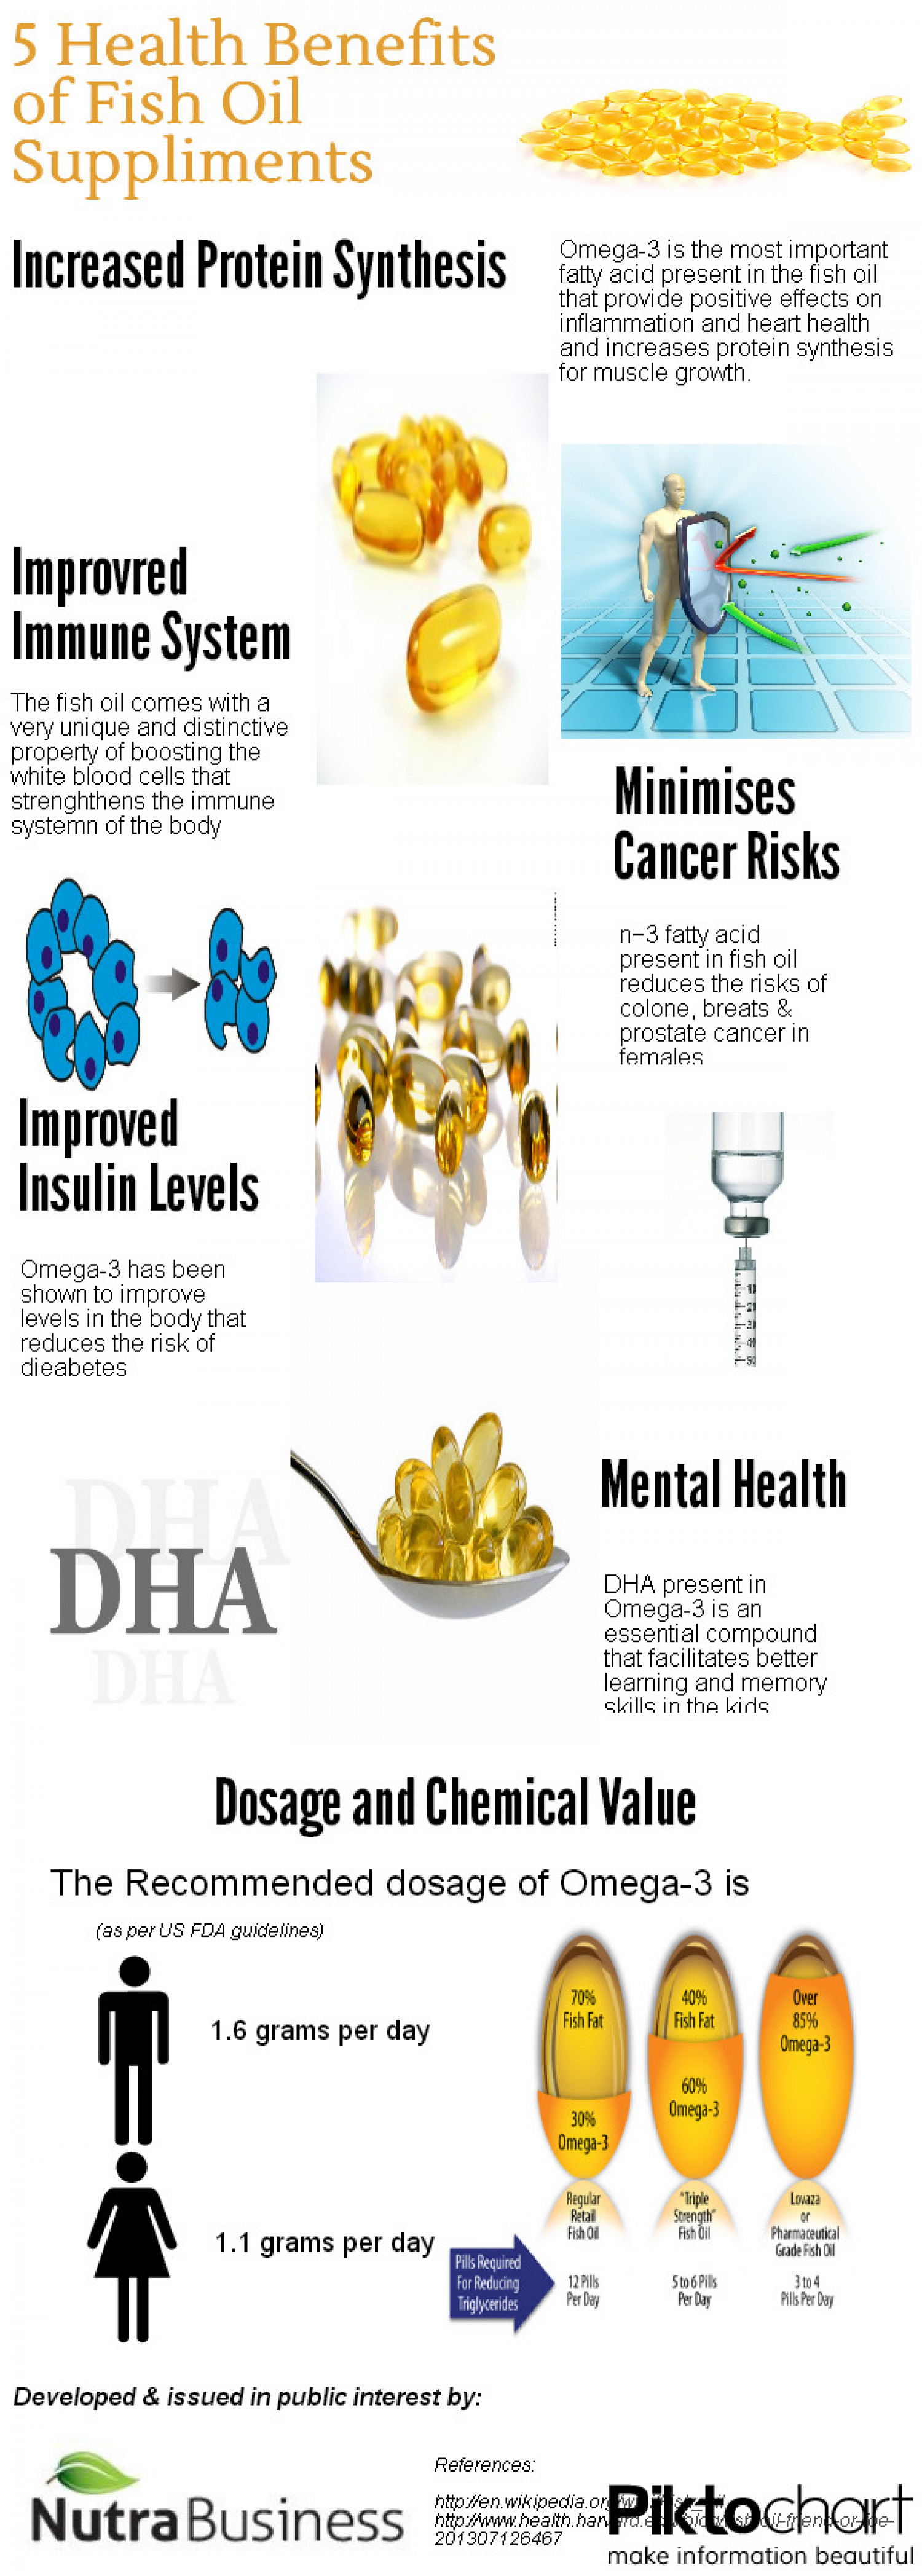 fish oil health benefits The nutrition industry has really jumped on the bandwagon regarding the use of fish oil to improve human health.